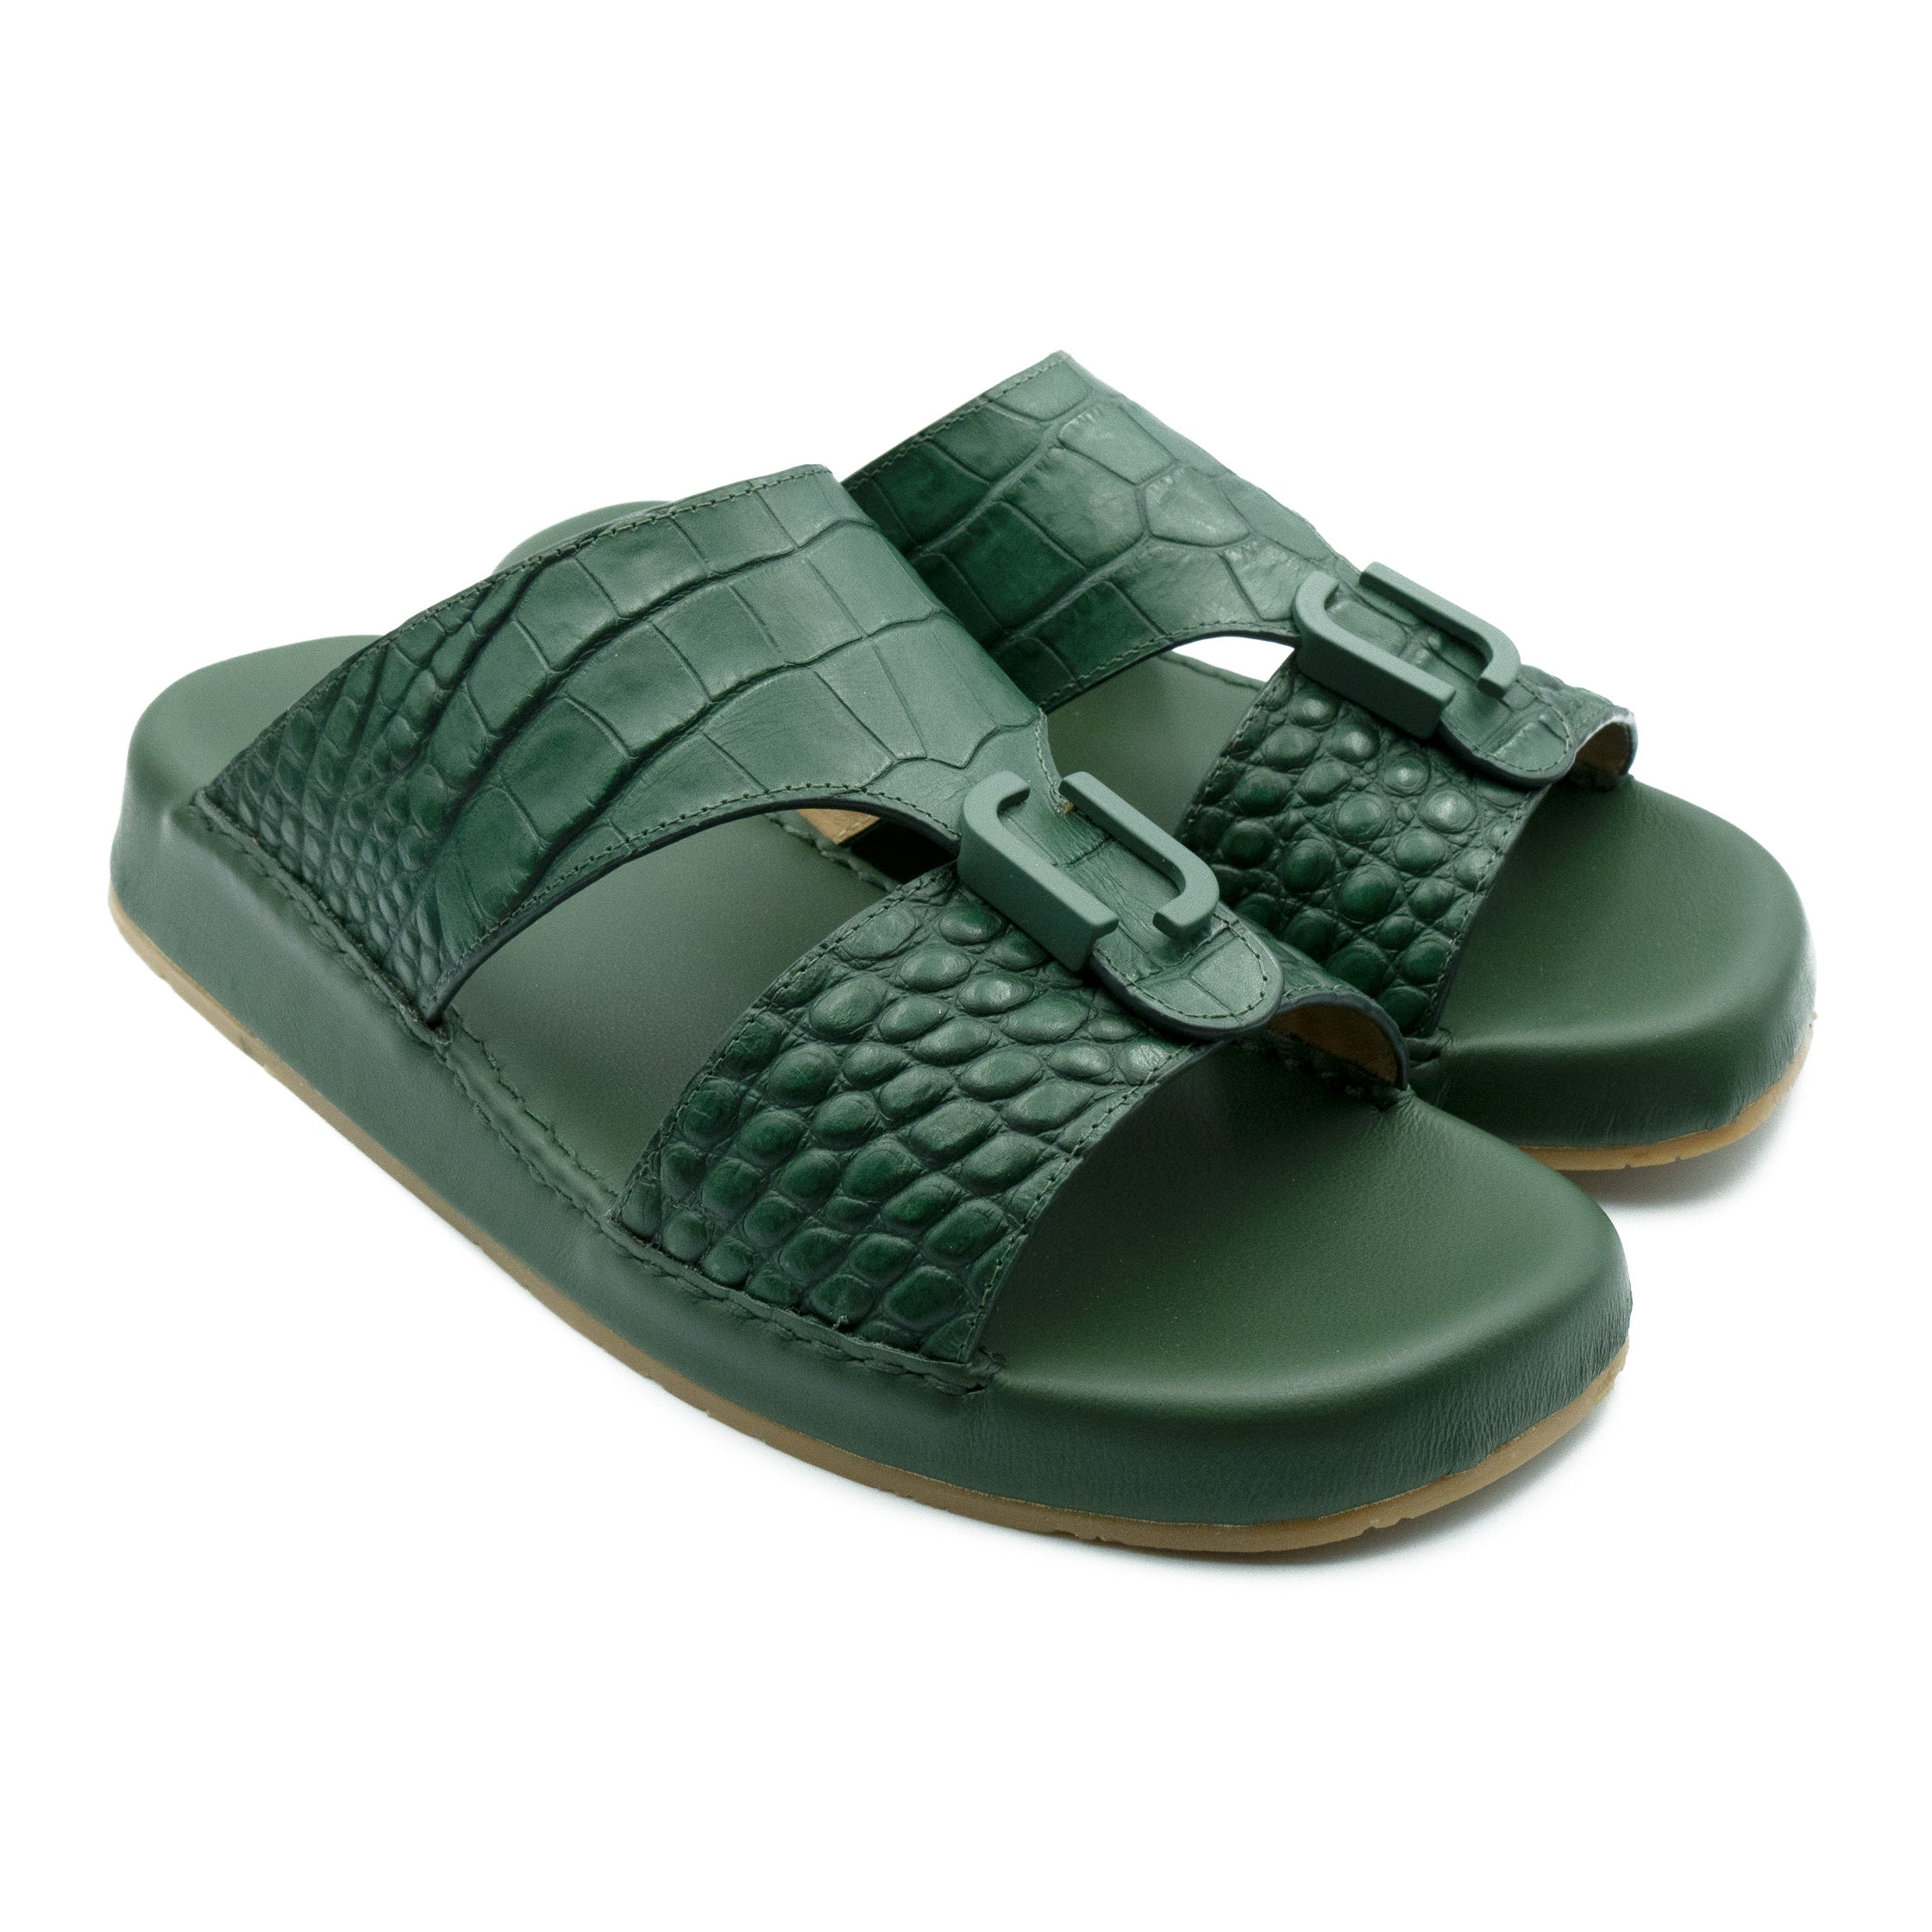 Green Matt Croco (REC01) Arabic Sandals